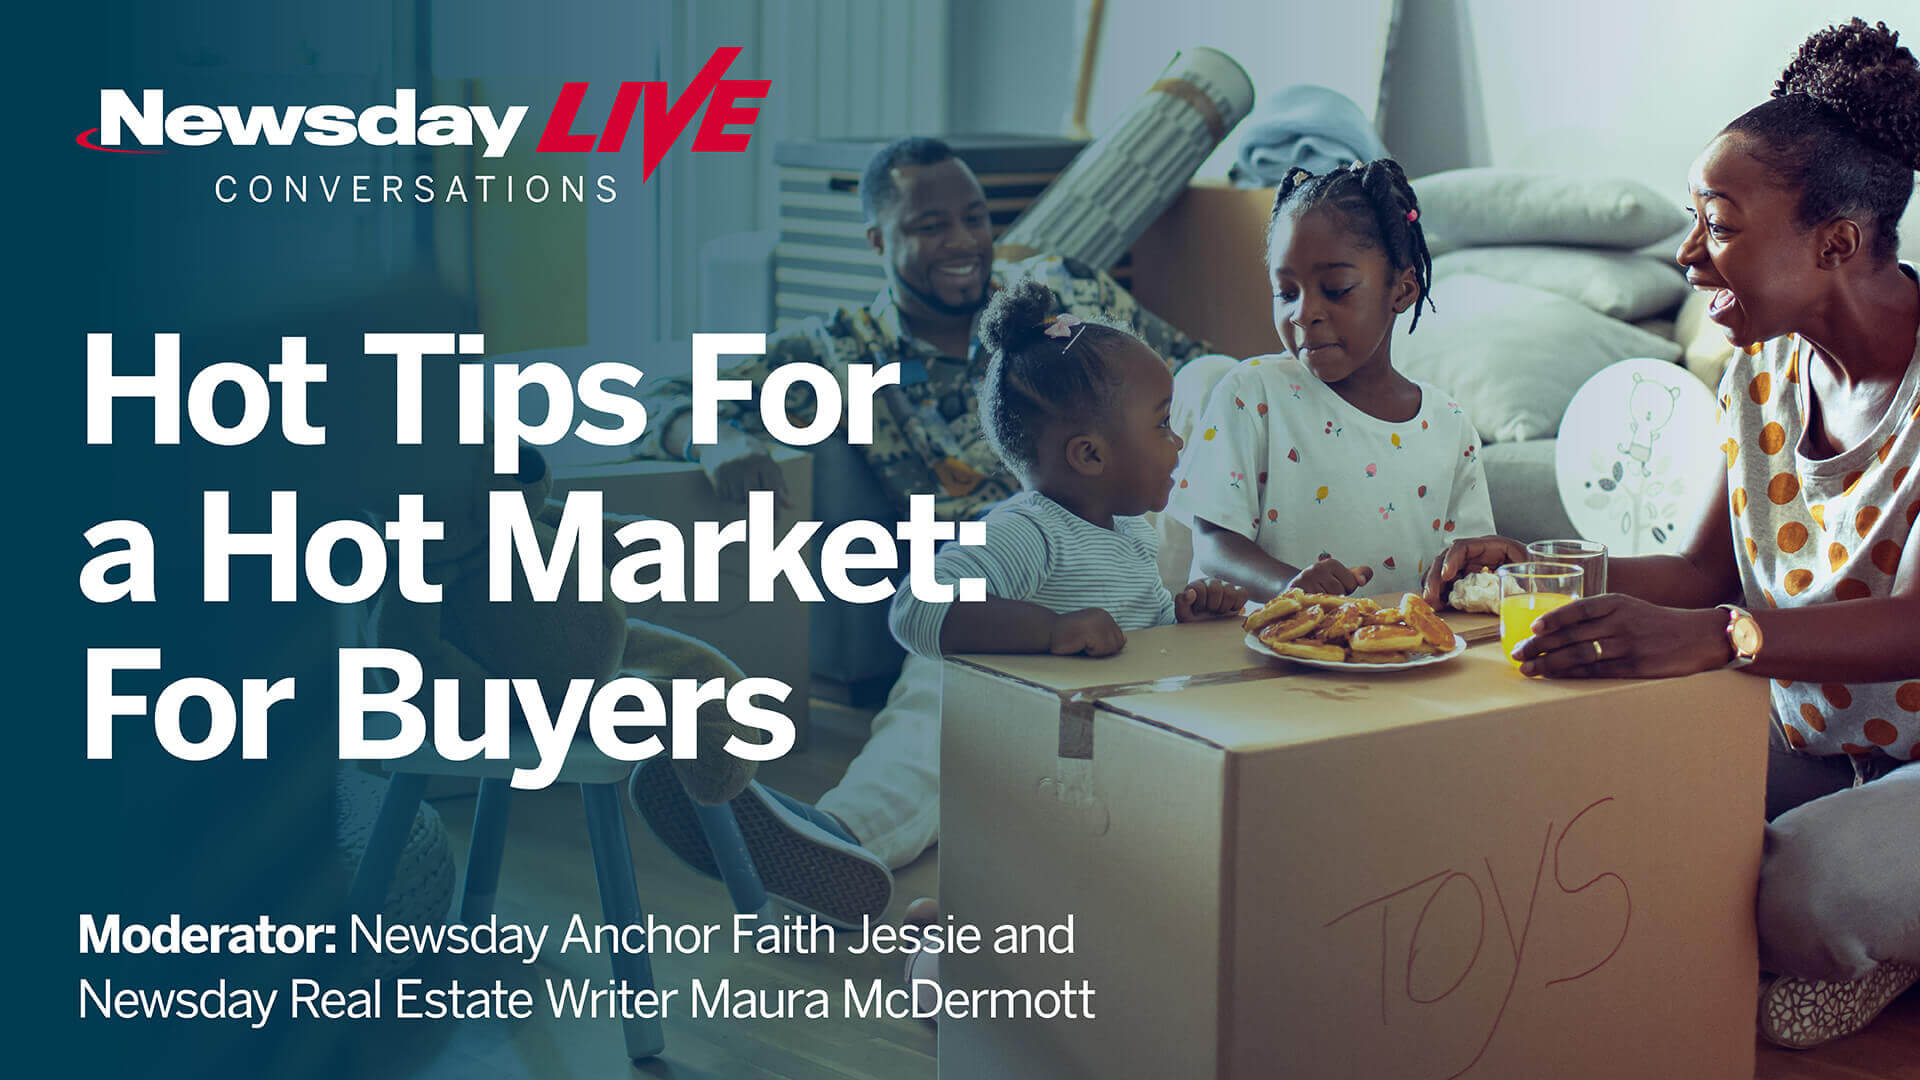 Hot Tips For a Hot Market: For Buyers